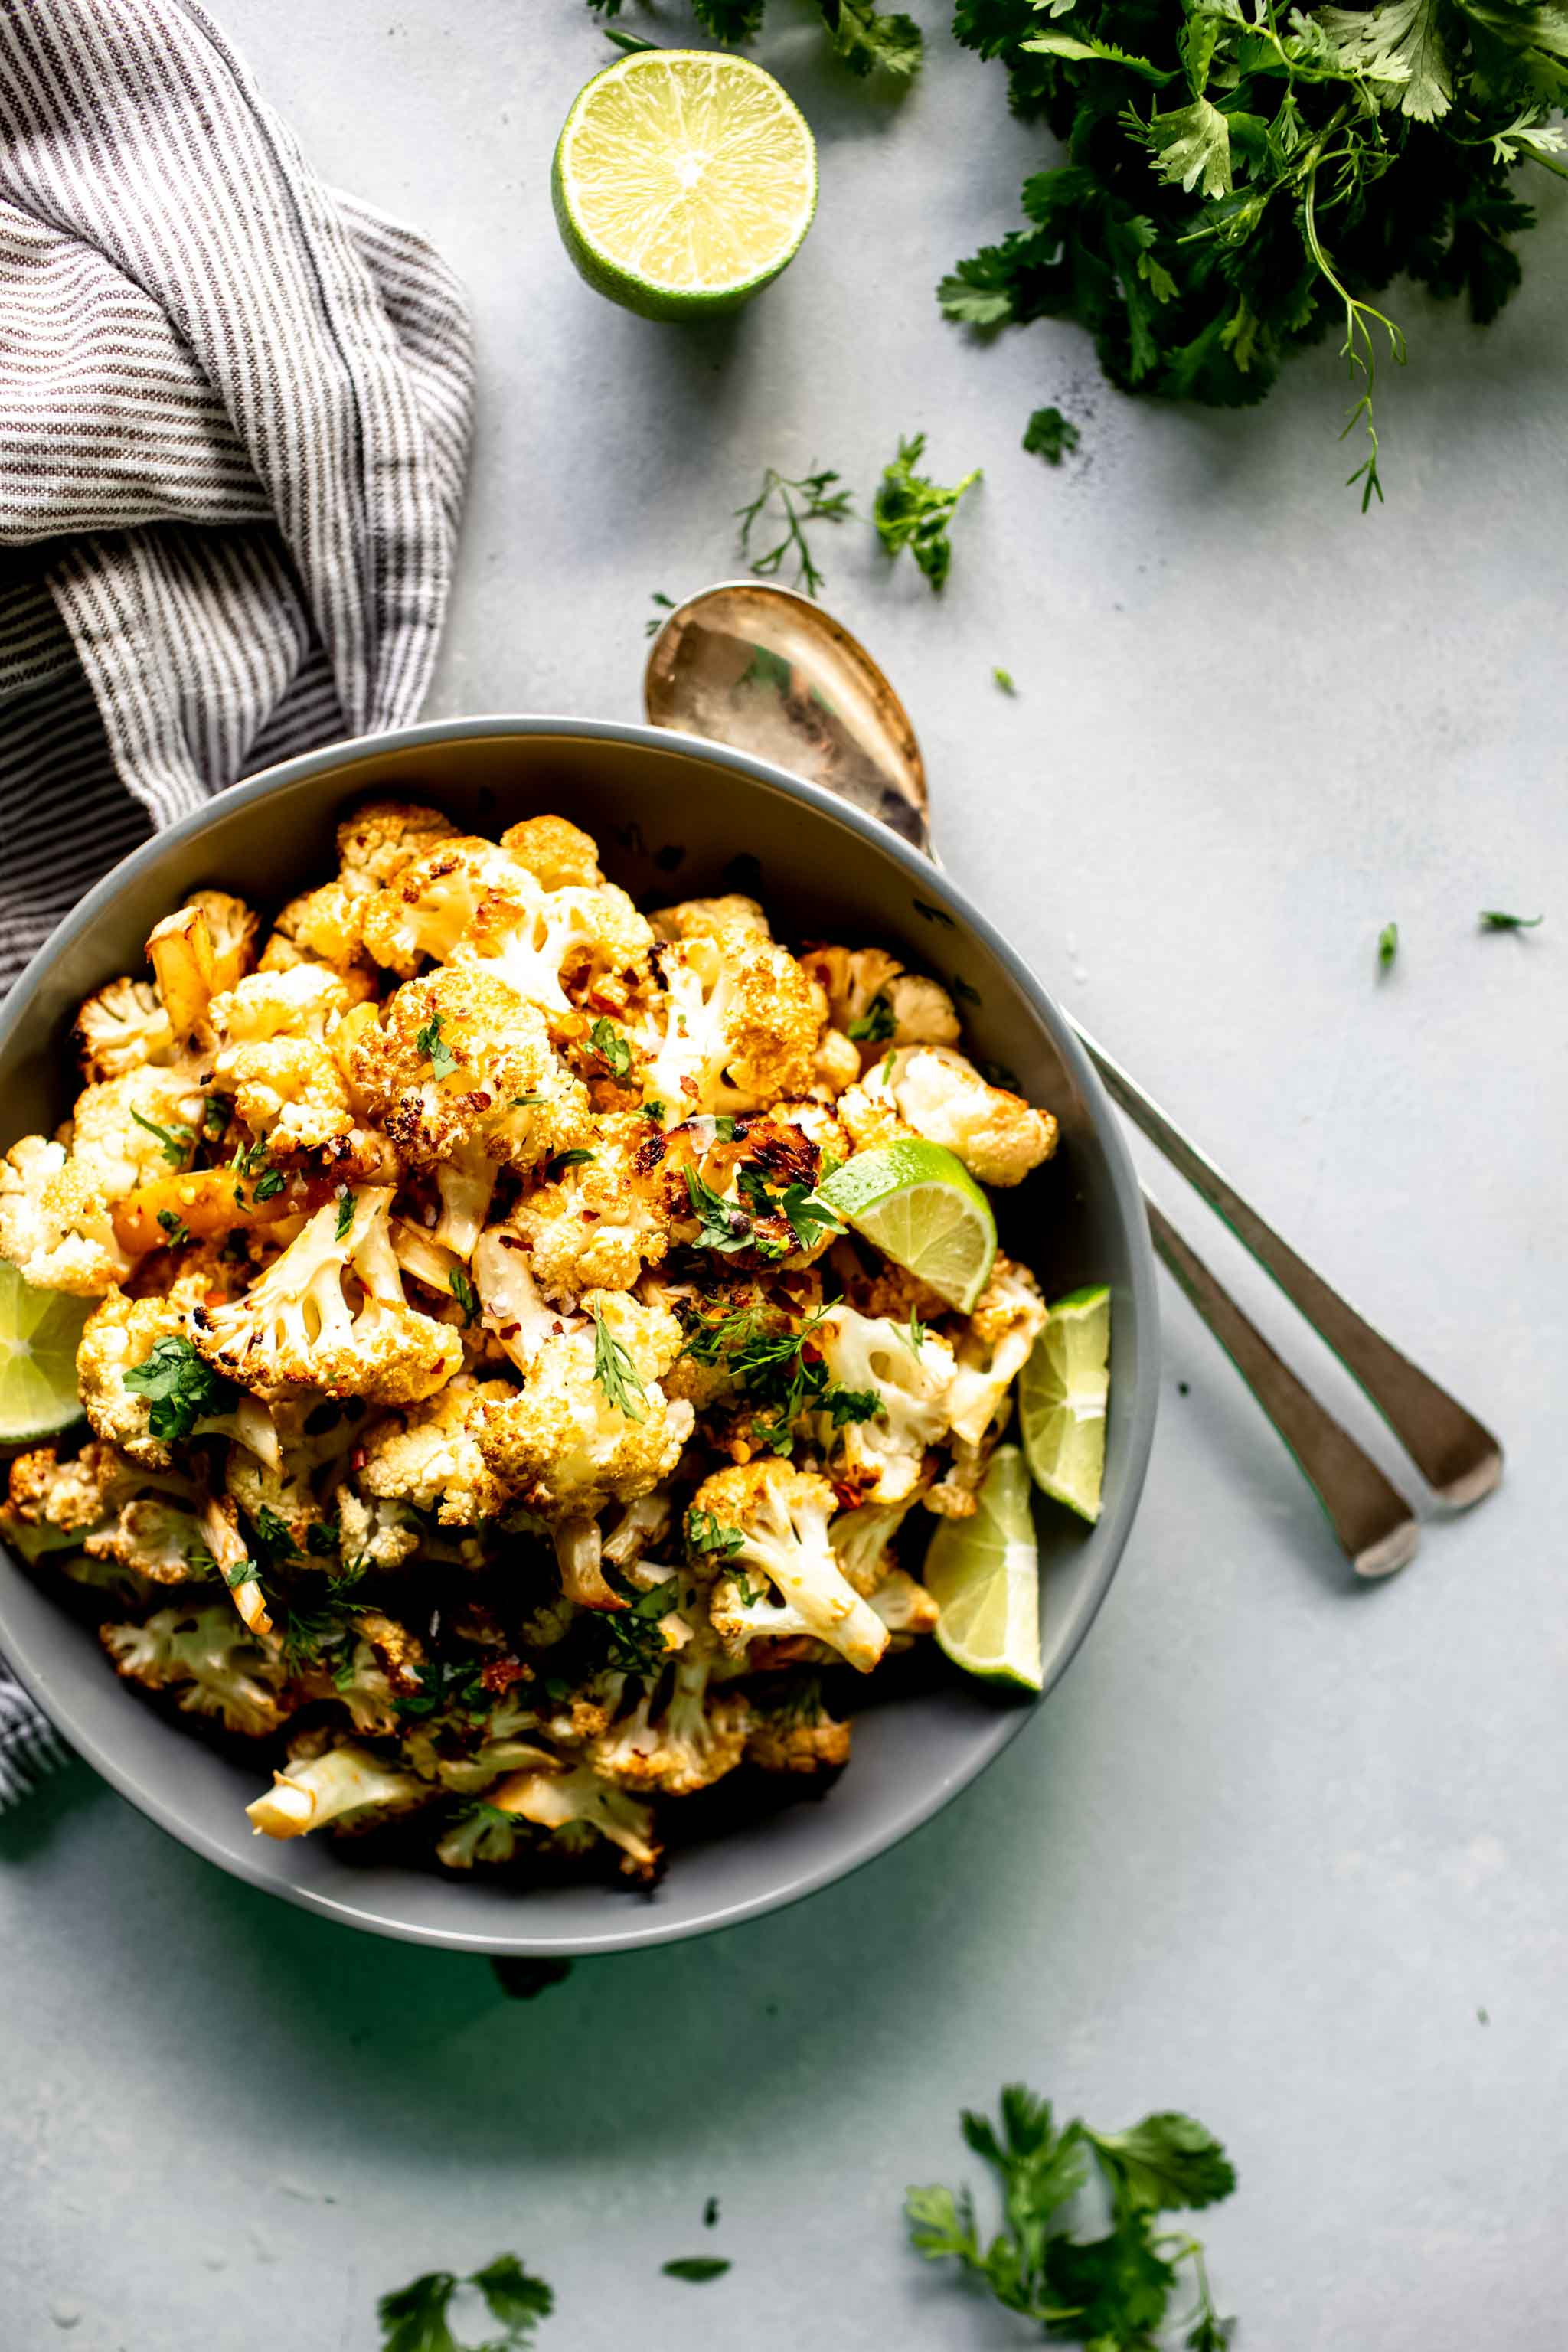 Overhead shot of bowl of roasted cauliflower on grey table next to bunch of cilantro, lime and serving spoons.